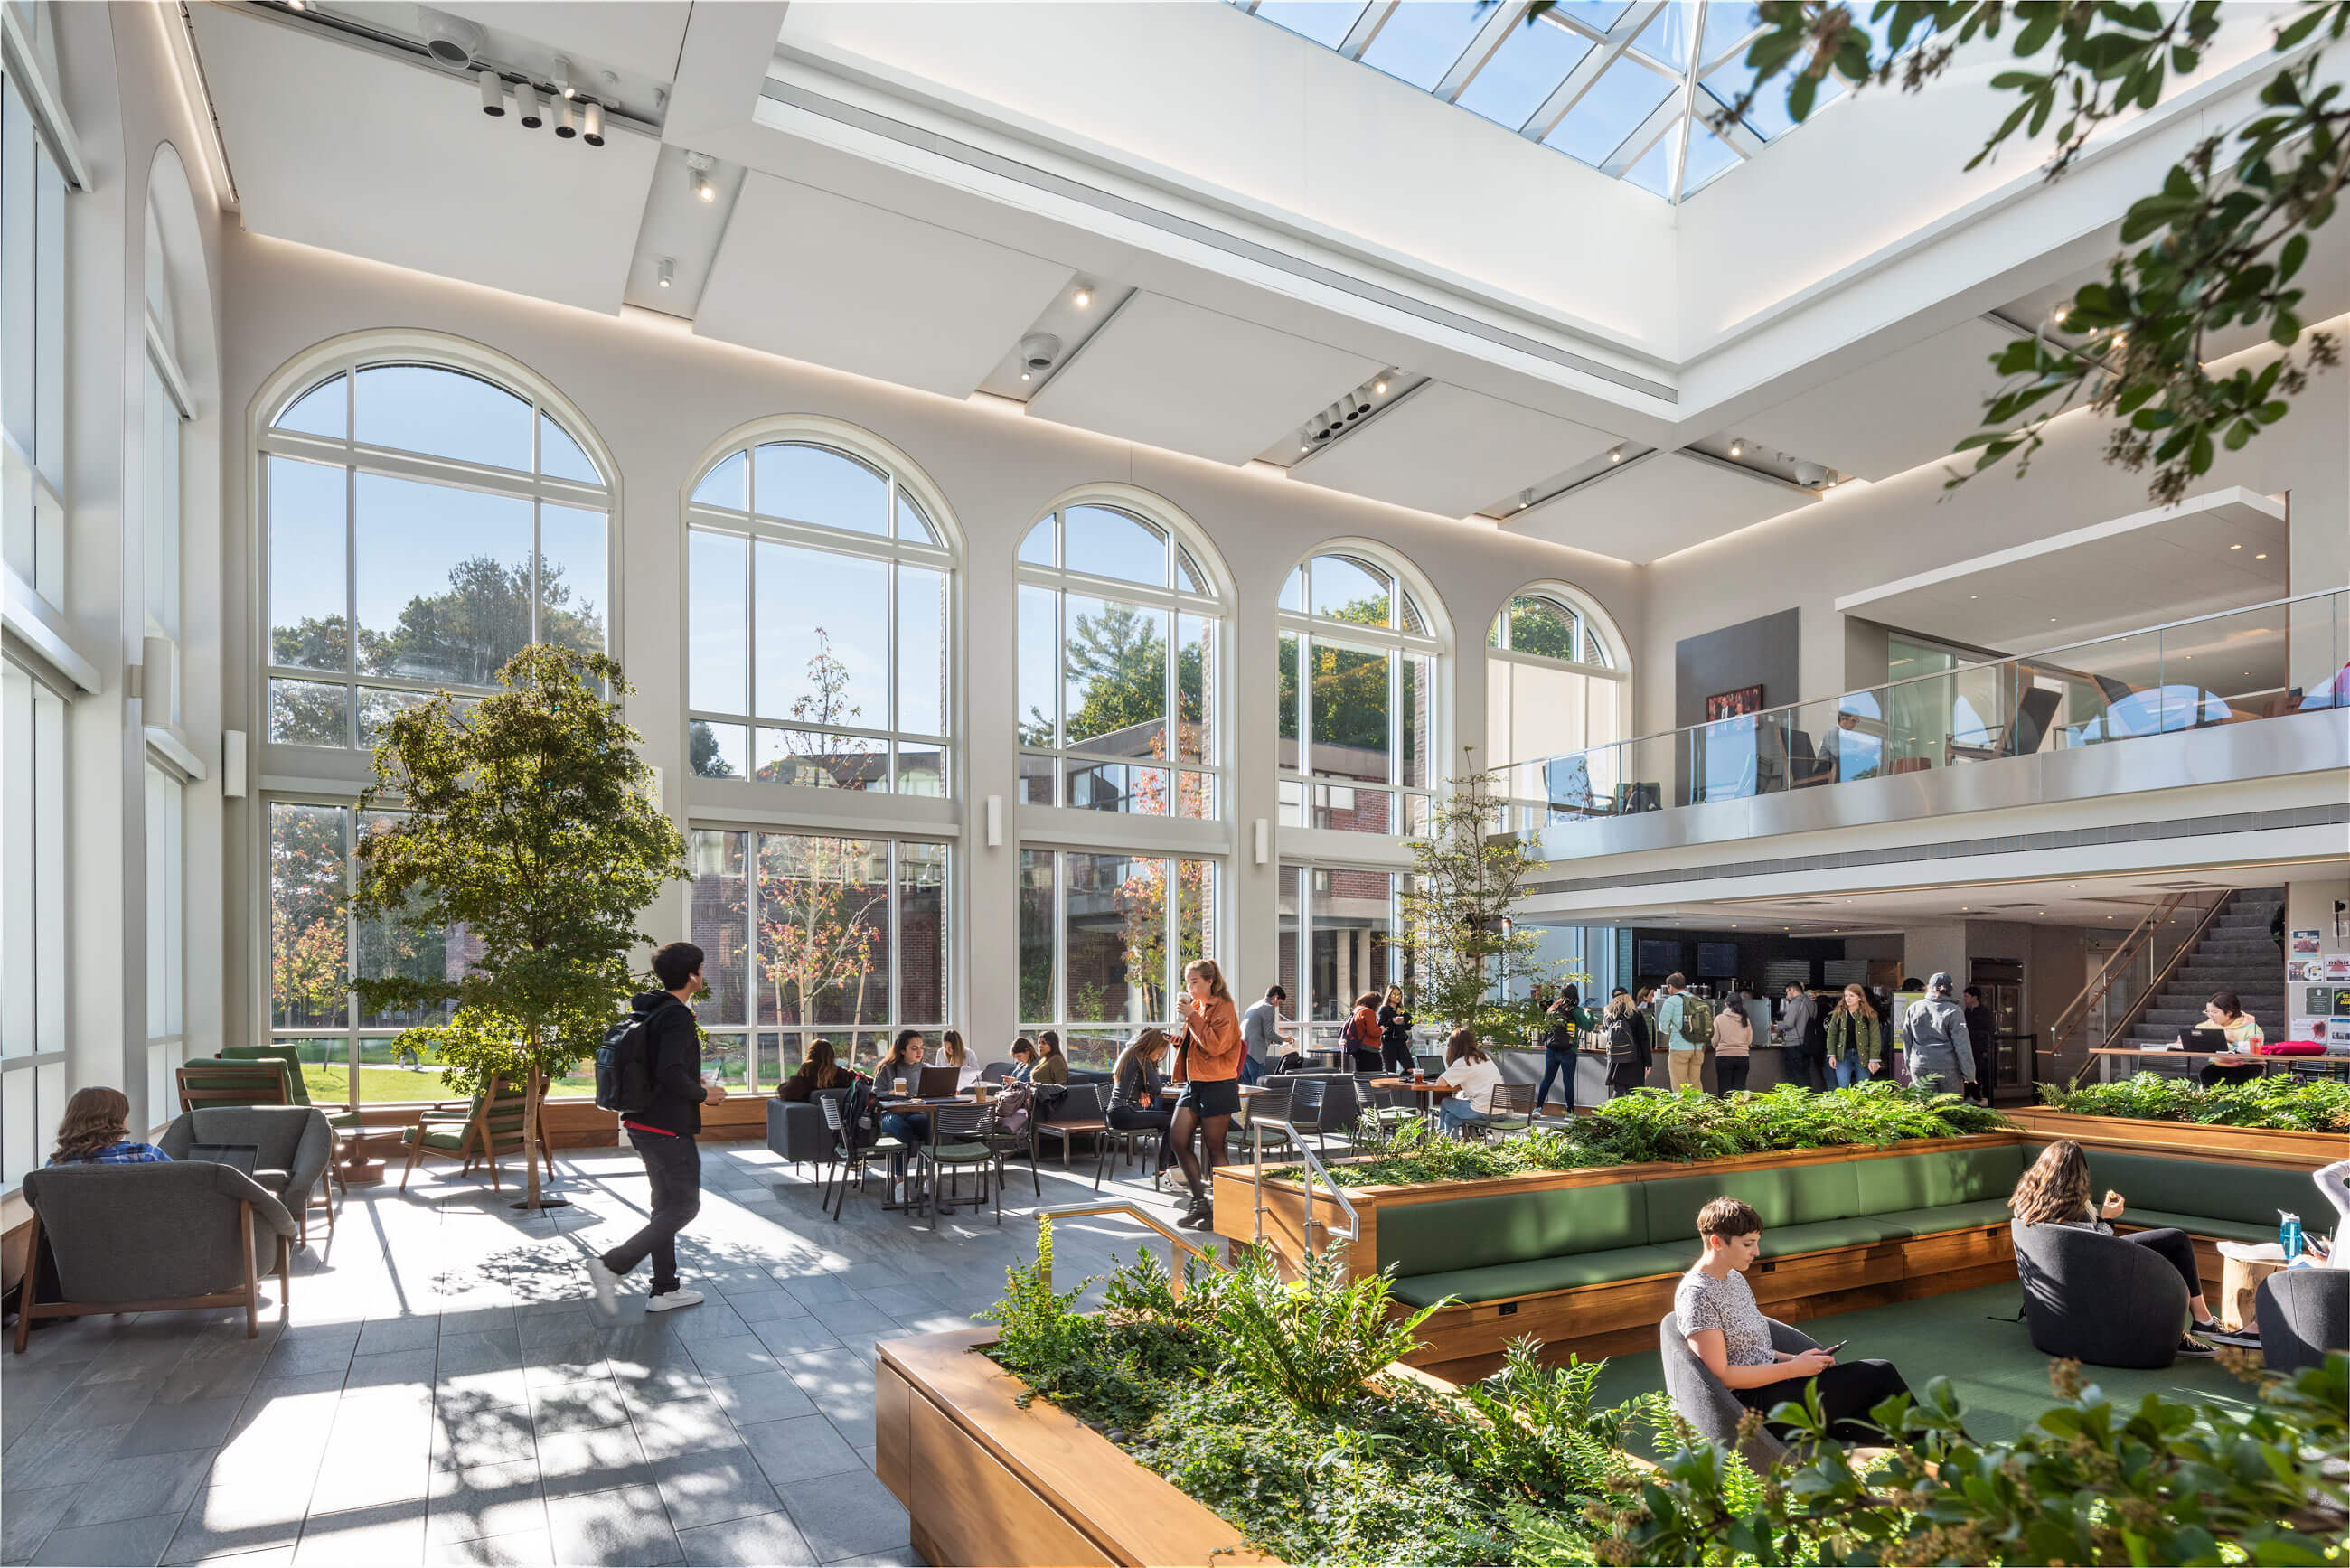 Student studying and socializing in a light-filled space, with indoor trees and plantings defining the space around varied seating areas.